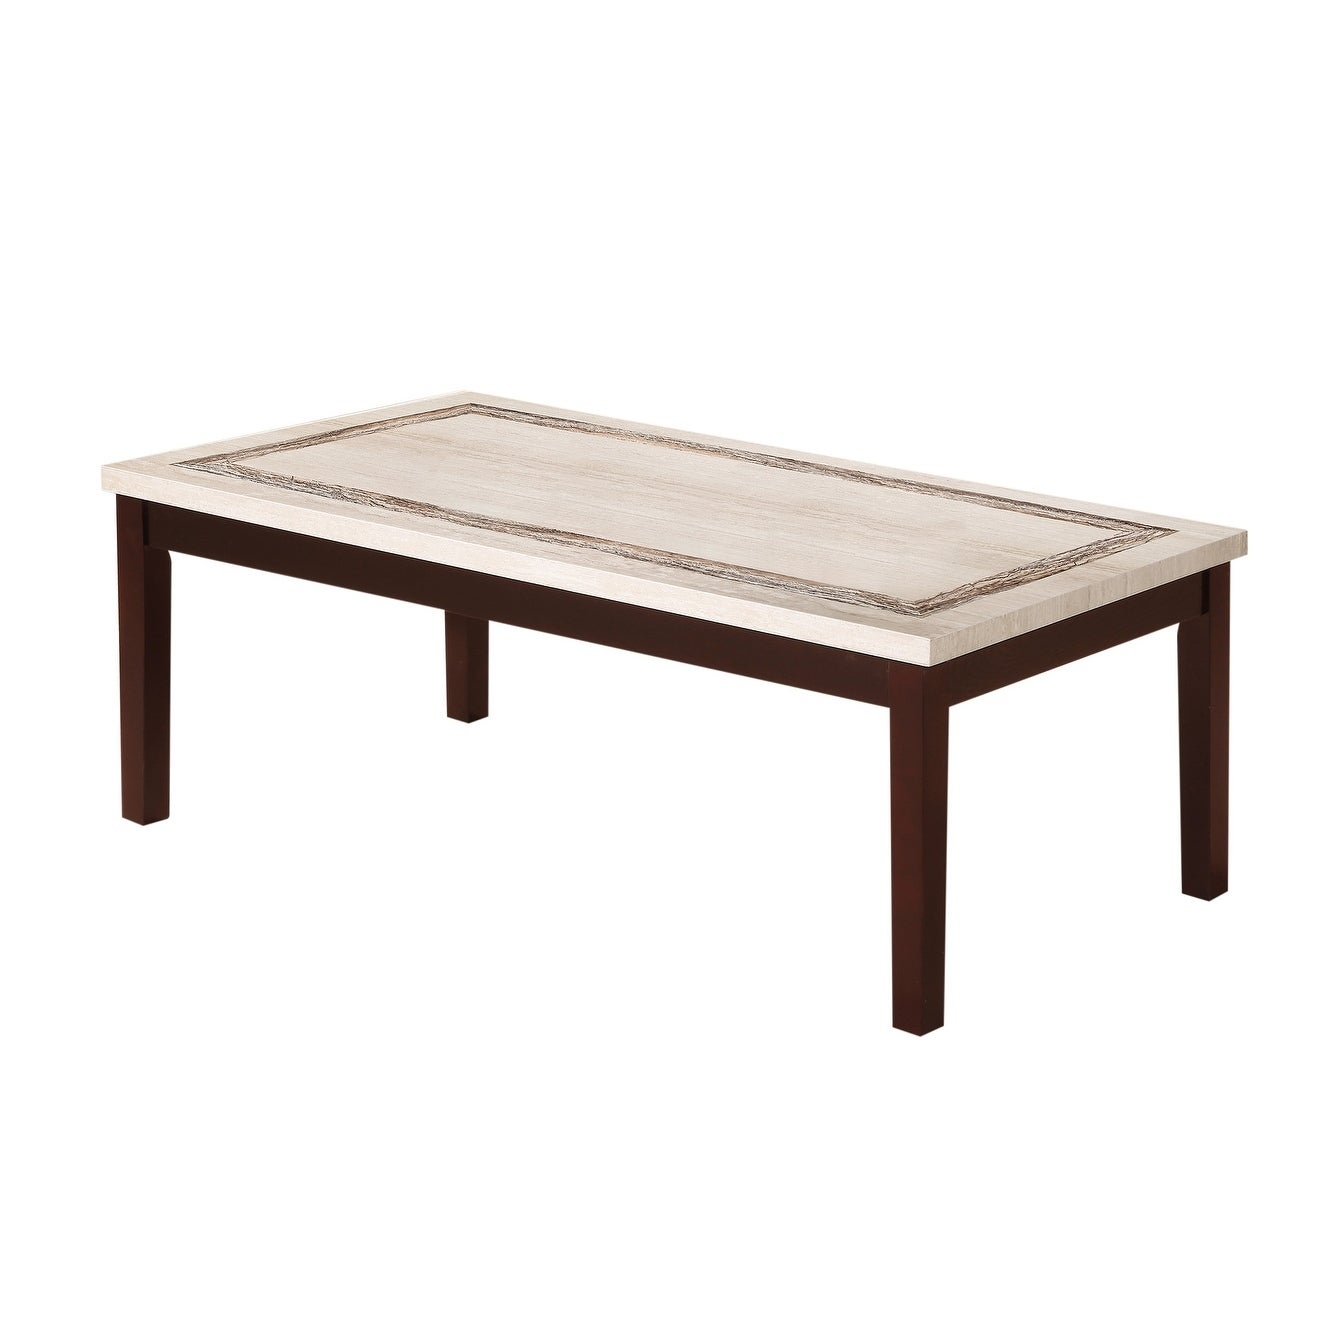 Astonishing 29 5 Inch Ivory Faux Marbelized Granite Coffee Table Pabps2019 Chair Design Images Pabps2019Com